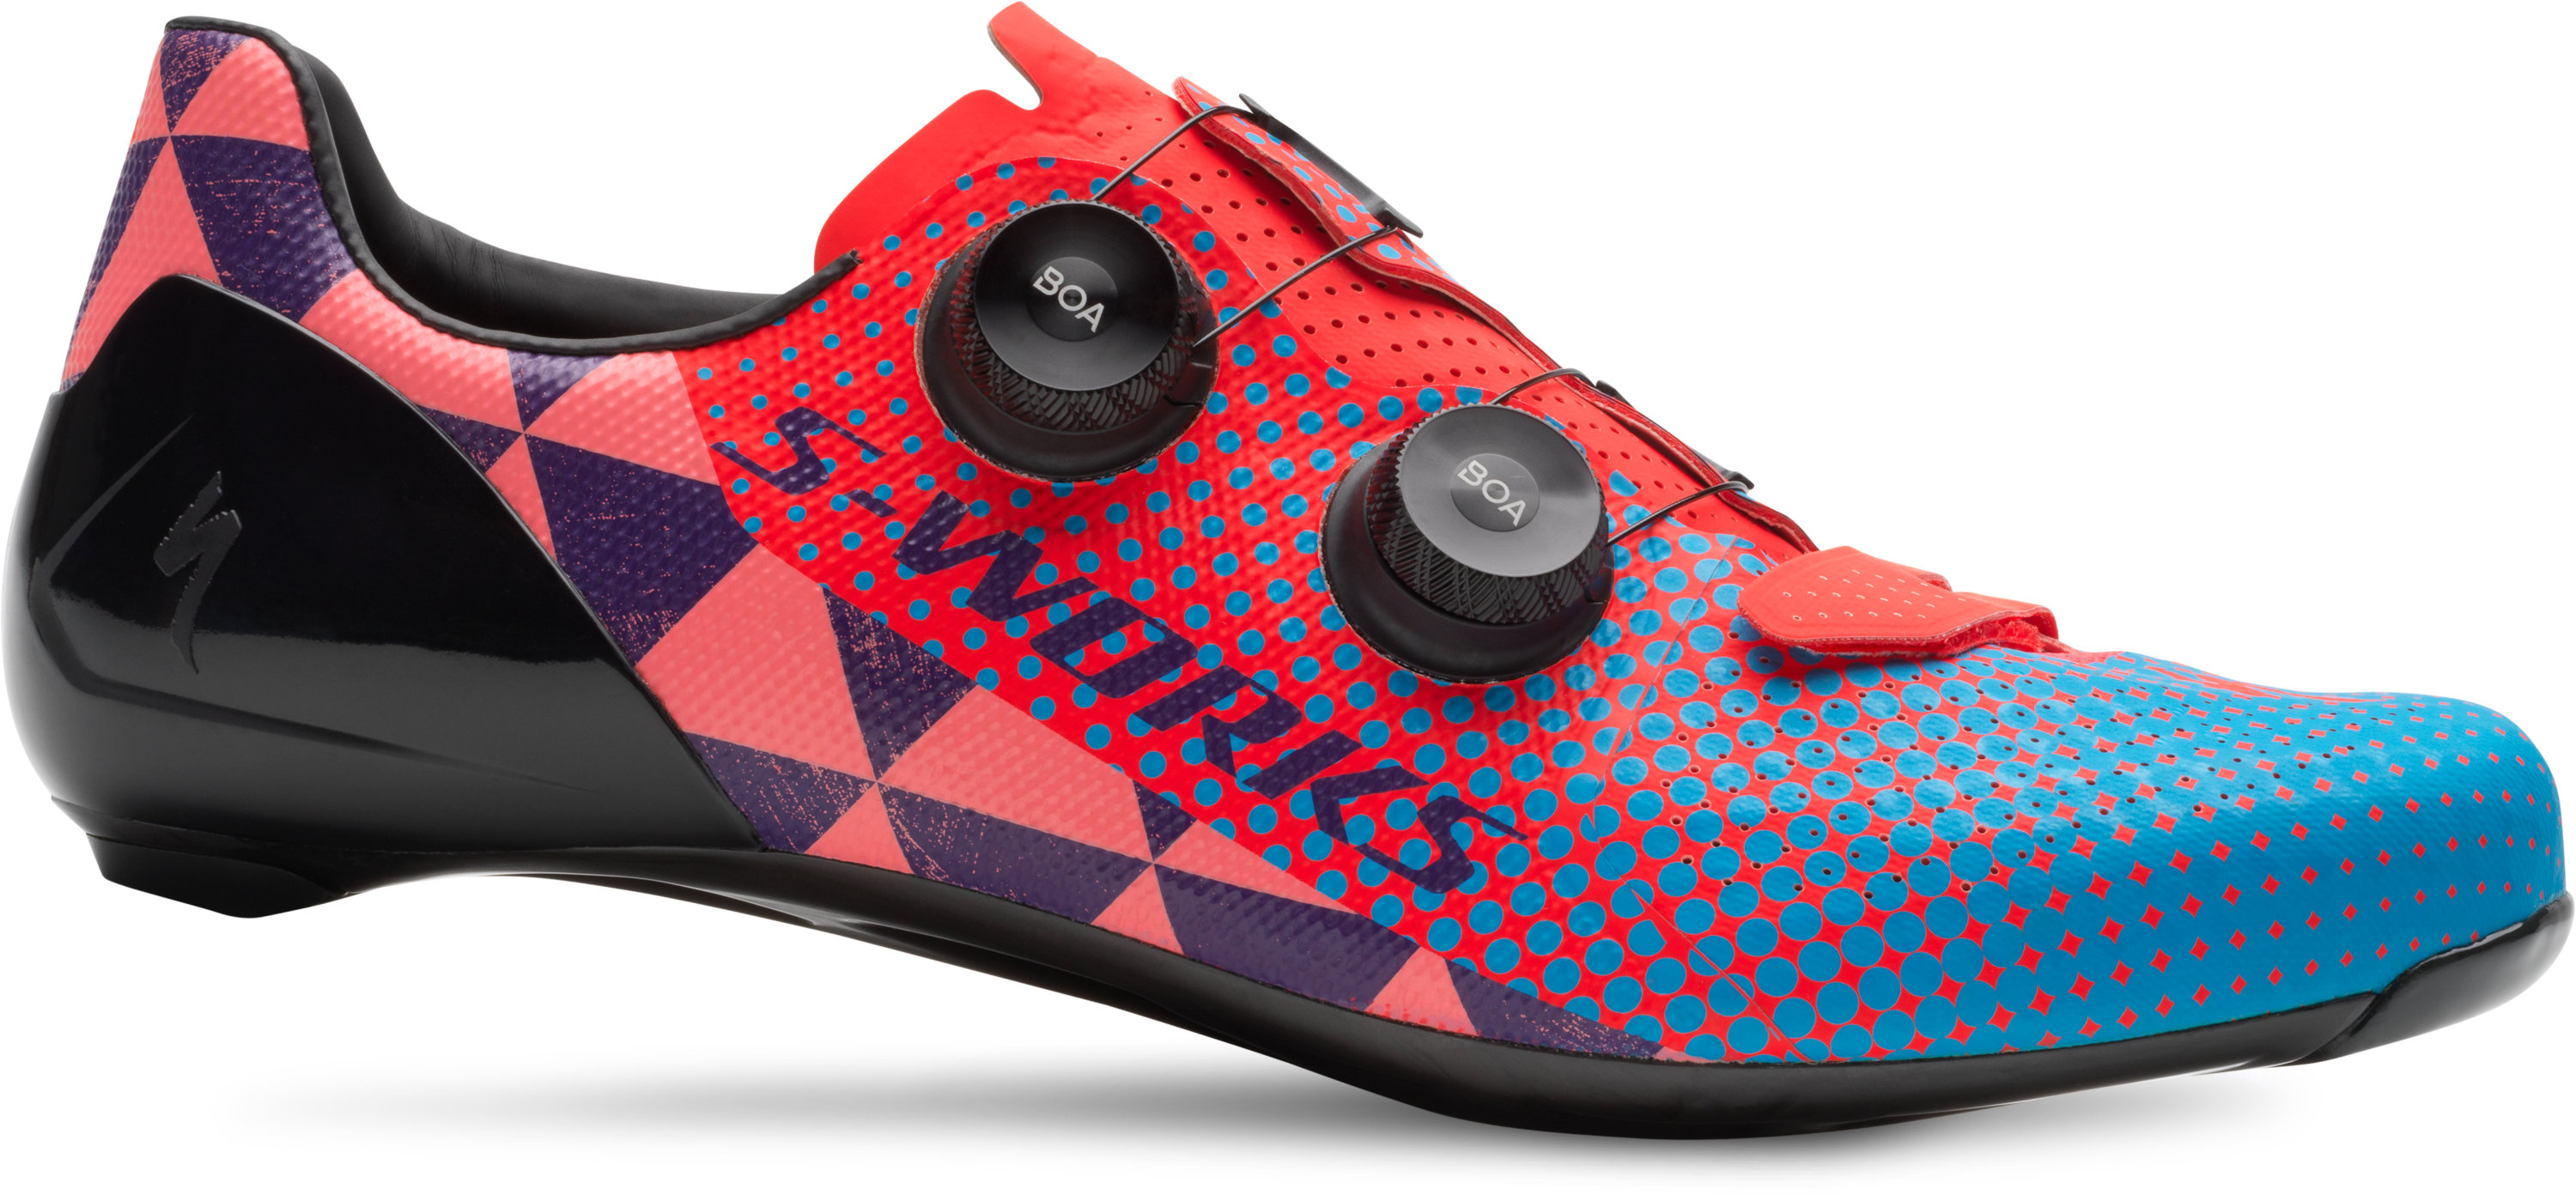 431c28806aac4 S-Works 7 Road Shoes – Red Hook Crit LTD | Specialized.com